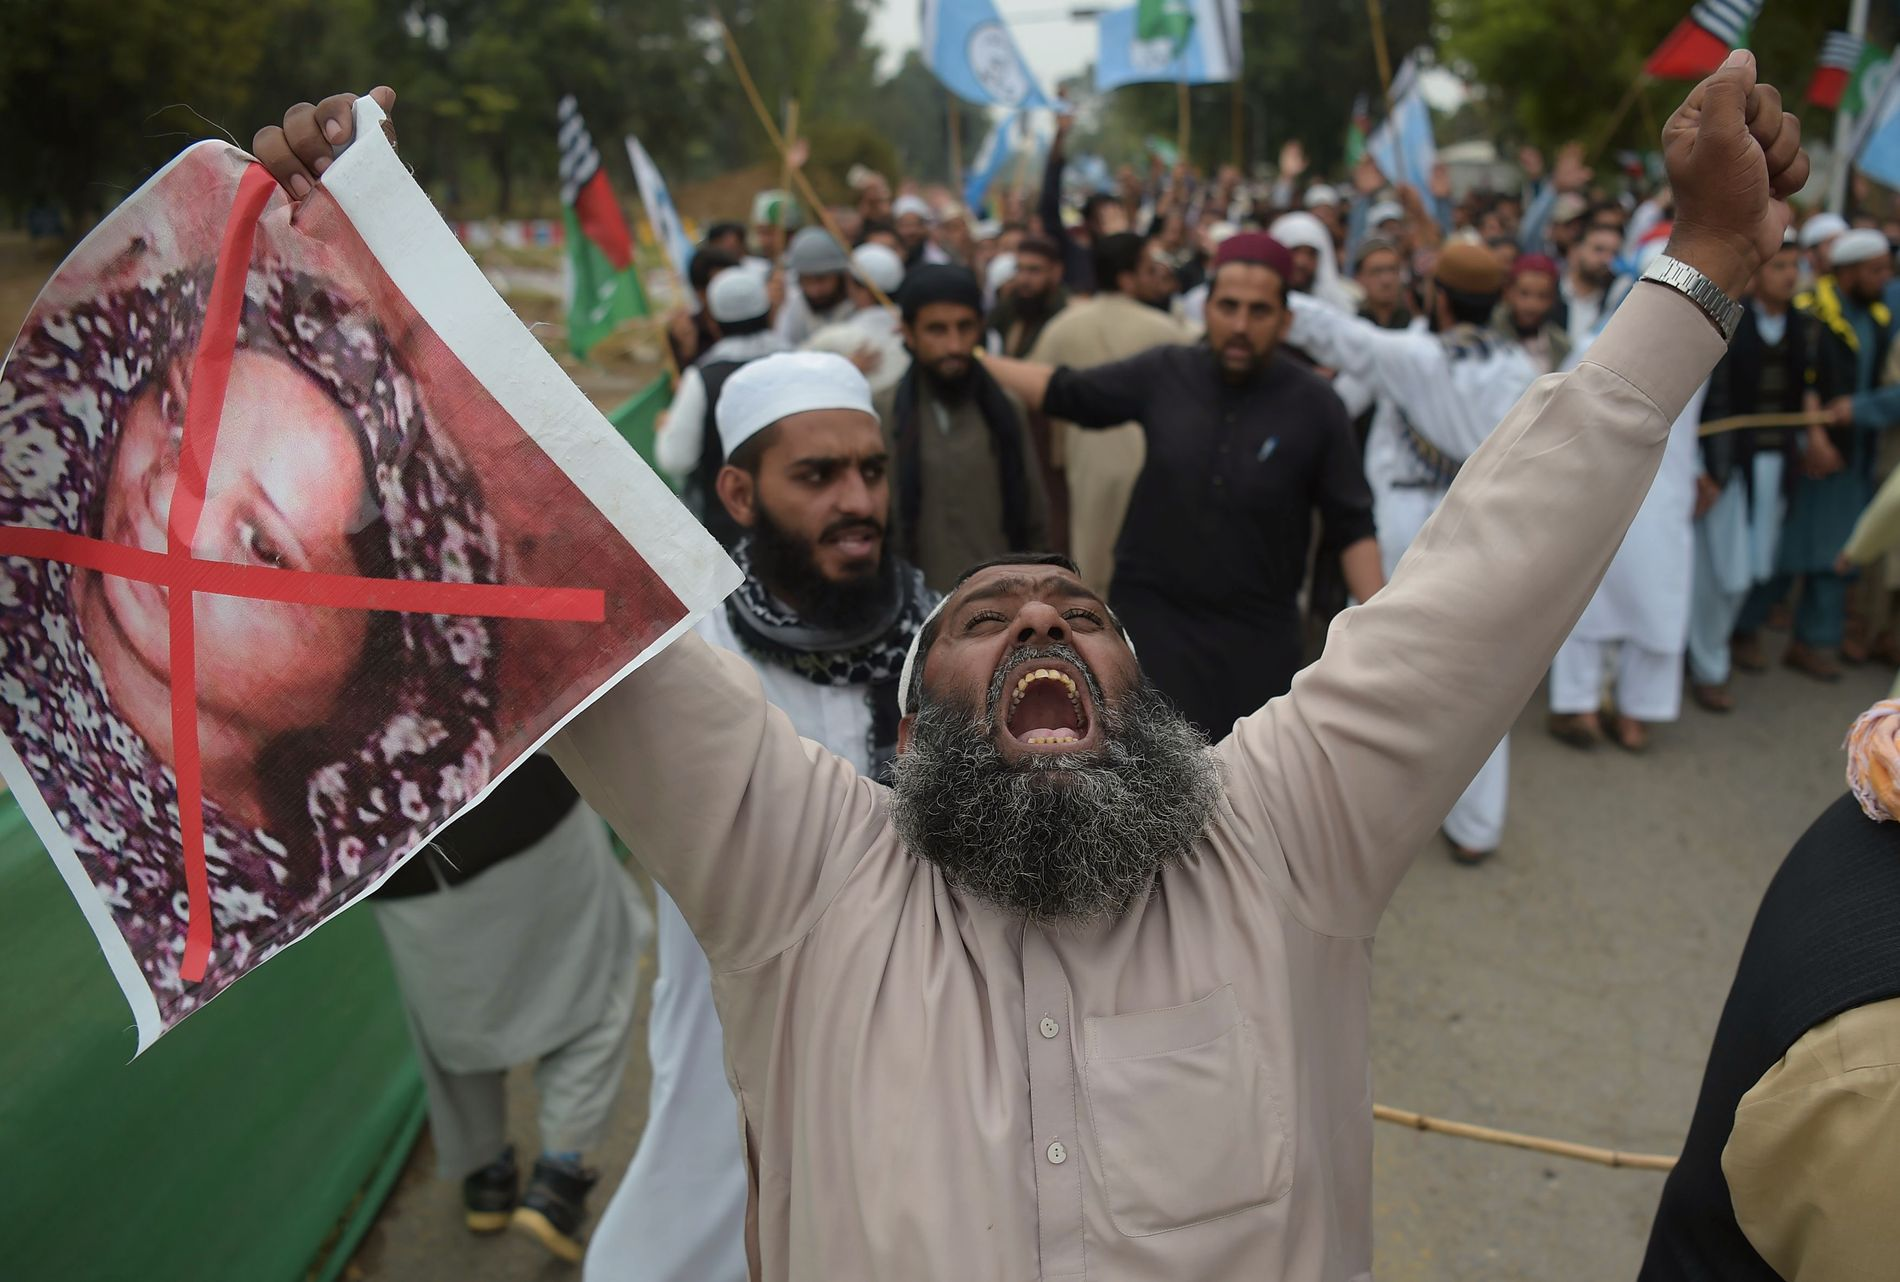 PROTESTER: A religious party supporter, Ahle Sunnat Wal Jamaat (ASWJ), views Bibi's image in a demonstration that was born after the Supreme Court's decision to release Bibi's blasphemy.